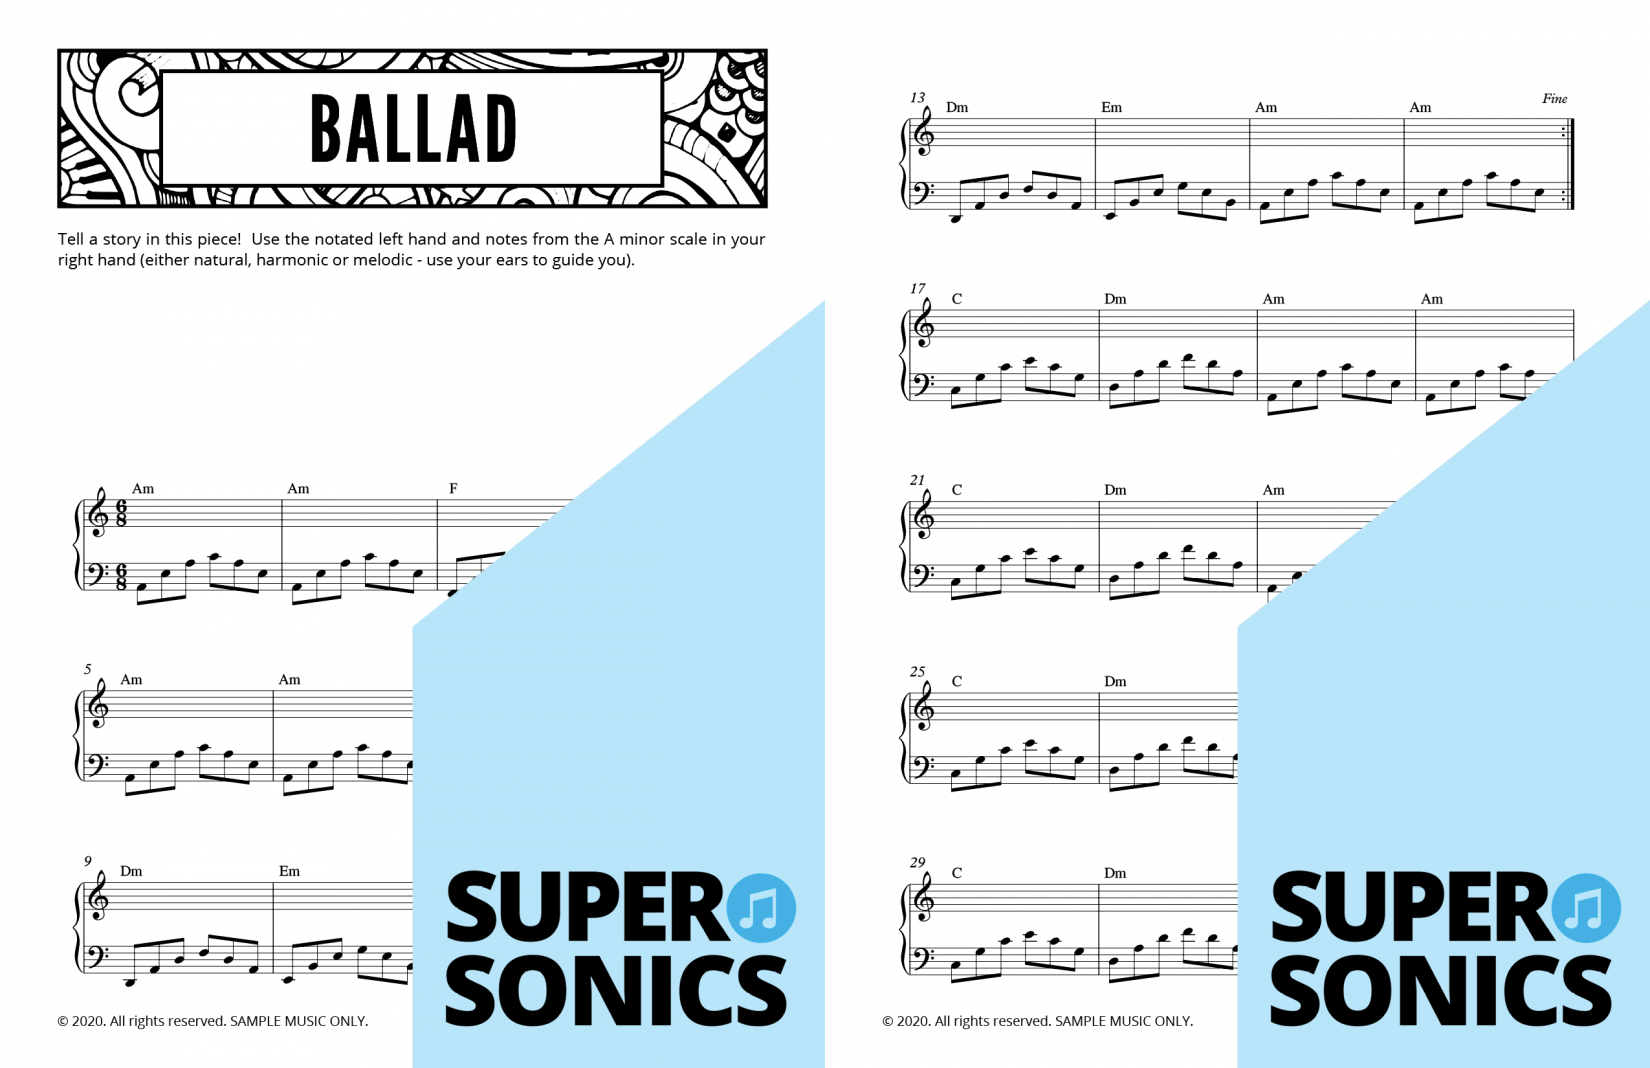 Supersonics Piano Method Level 5 Creative Exercises sample